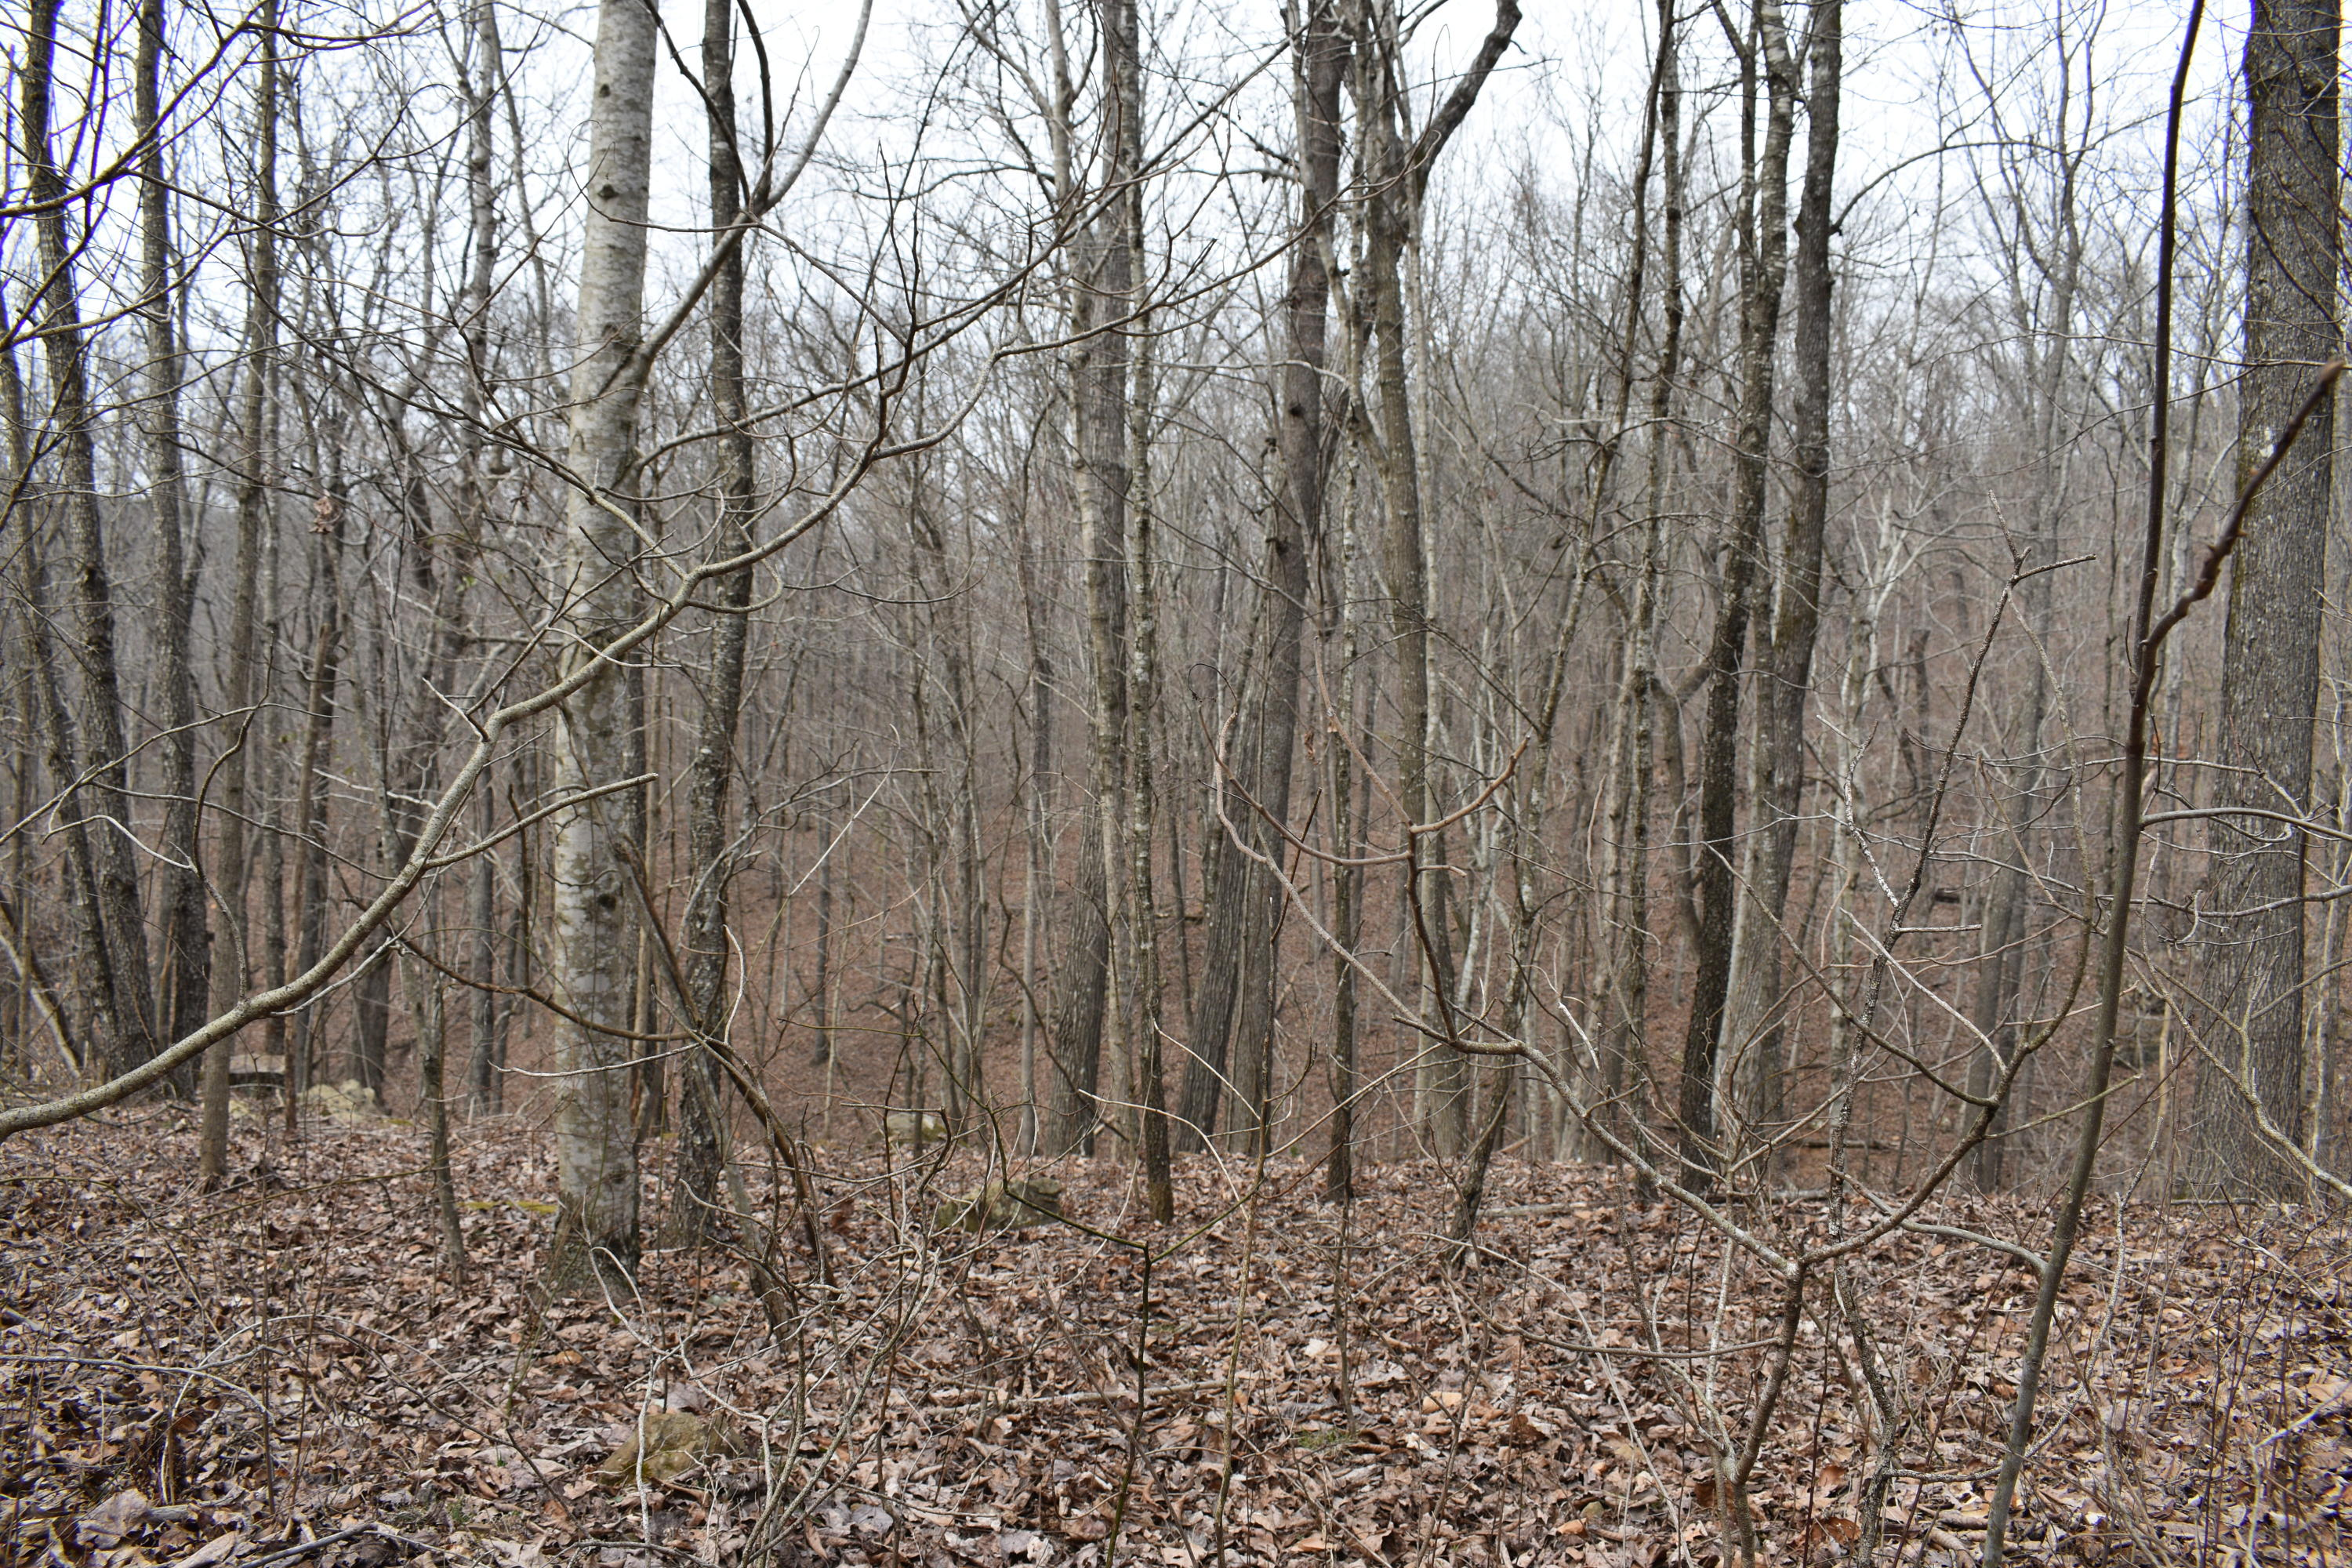 Large photo 24 of land for sale at 5867 Co Rd 4160 , Oark, AR, listed by Coldwell Banker Premier Realty